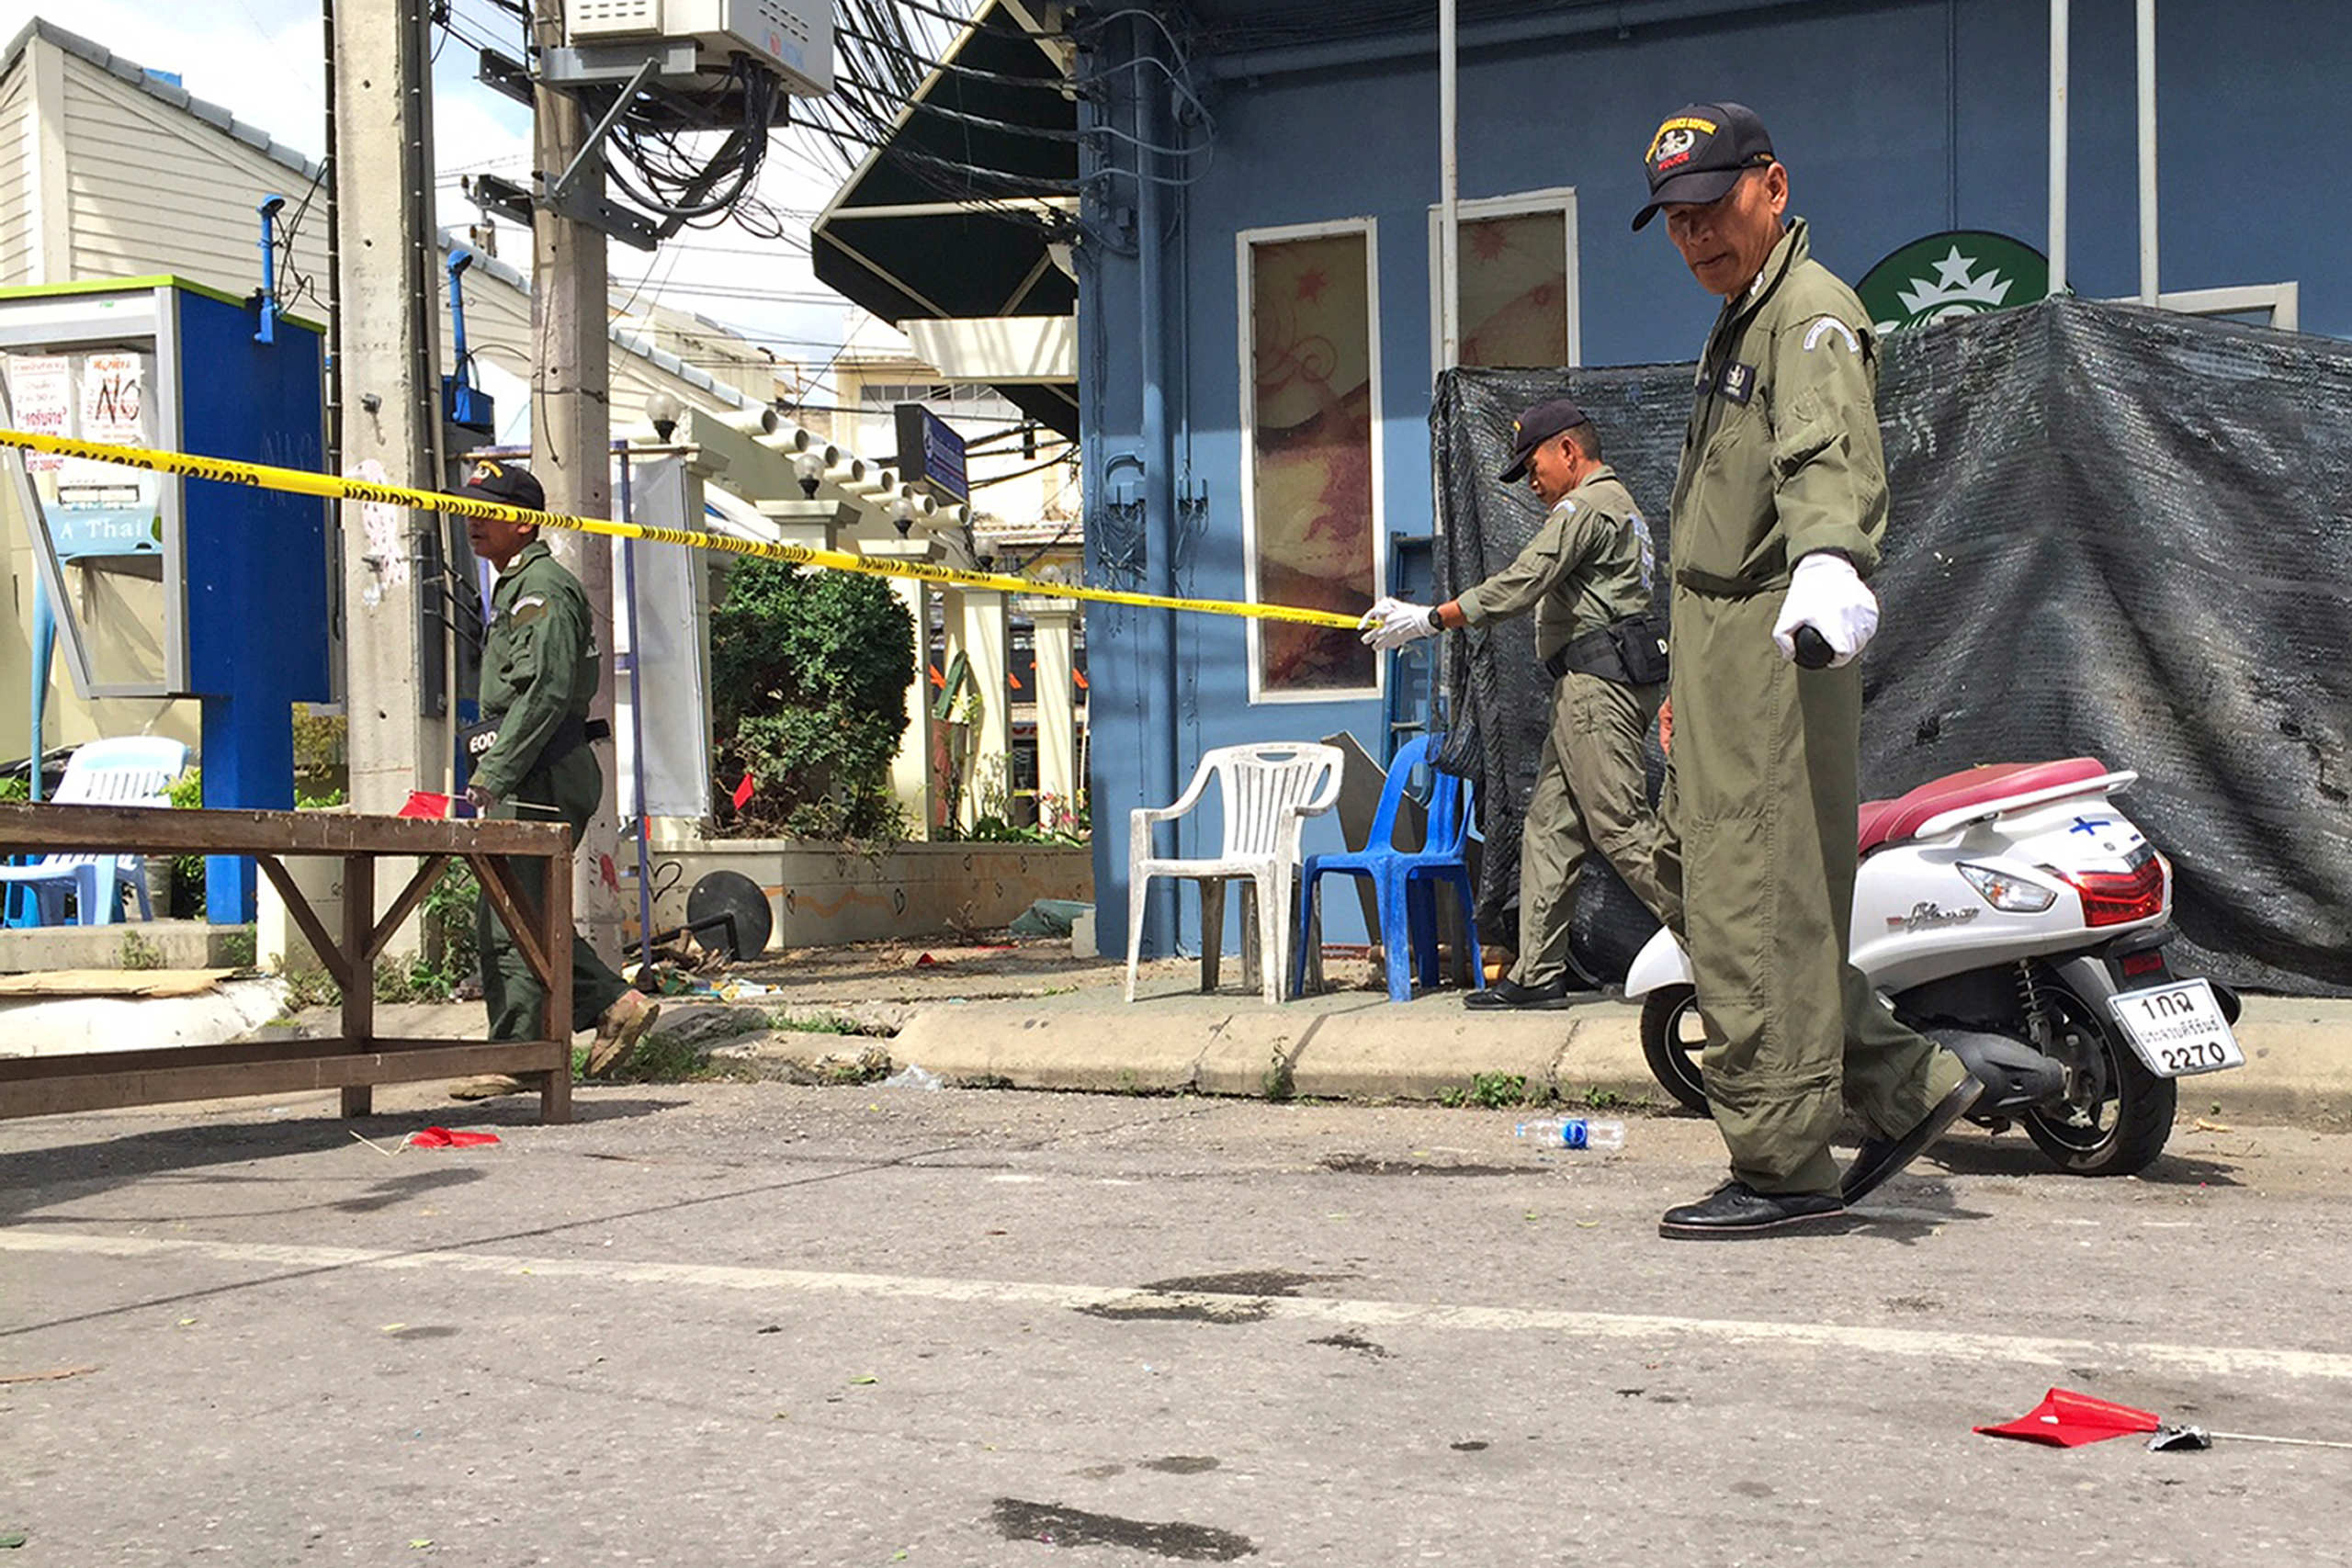 Investigators work at the scene of an explosion in the resort town of Hua Hin, 150 miles south of Bangkok, on Aug. 12, 2016.